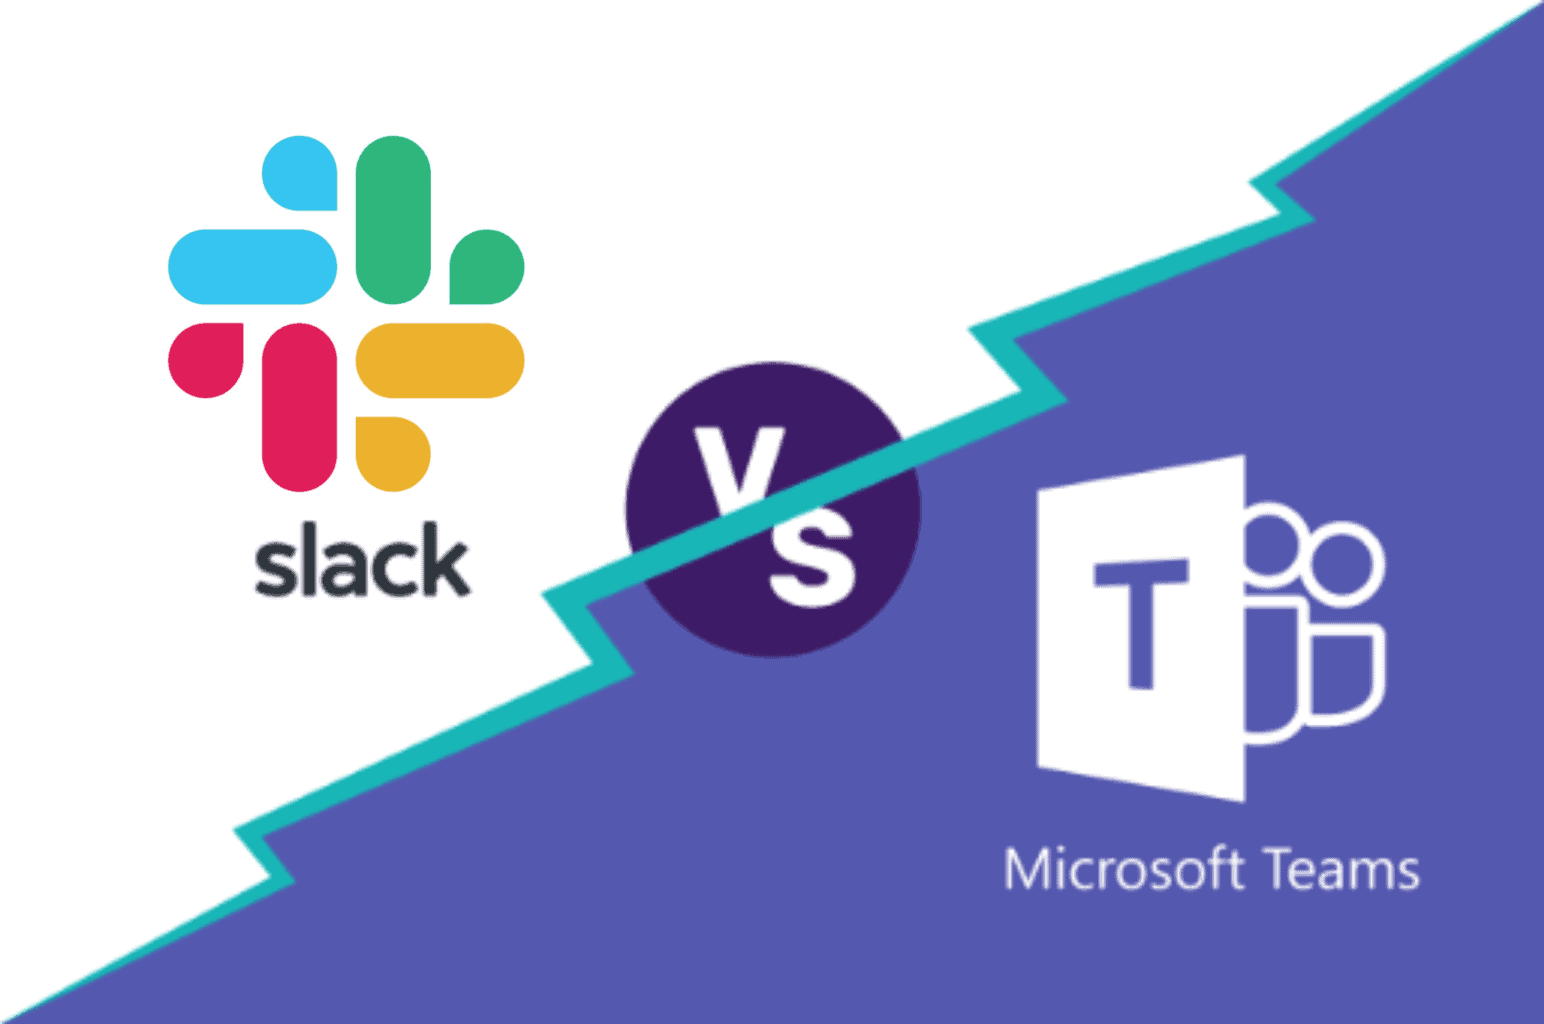 Slack vs Microsoft Teams logo